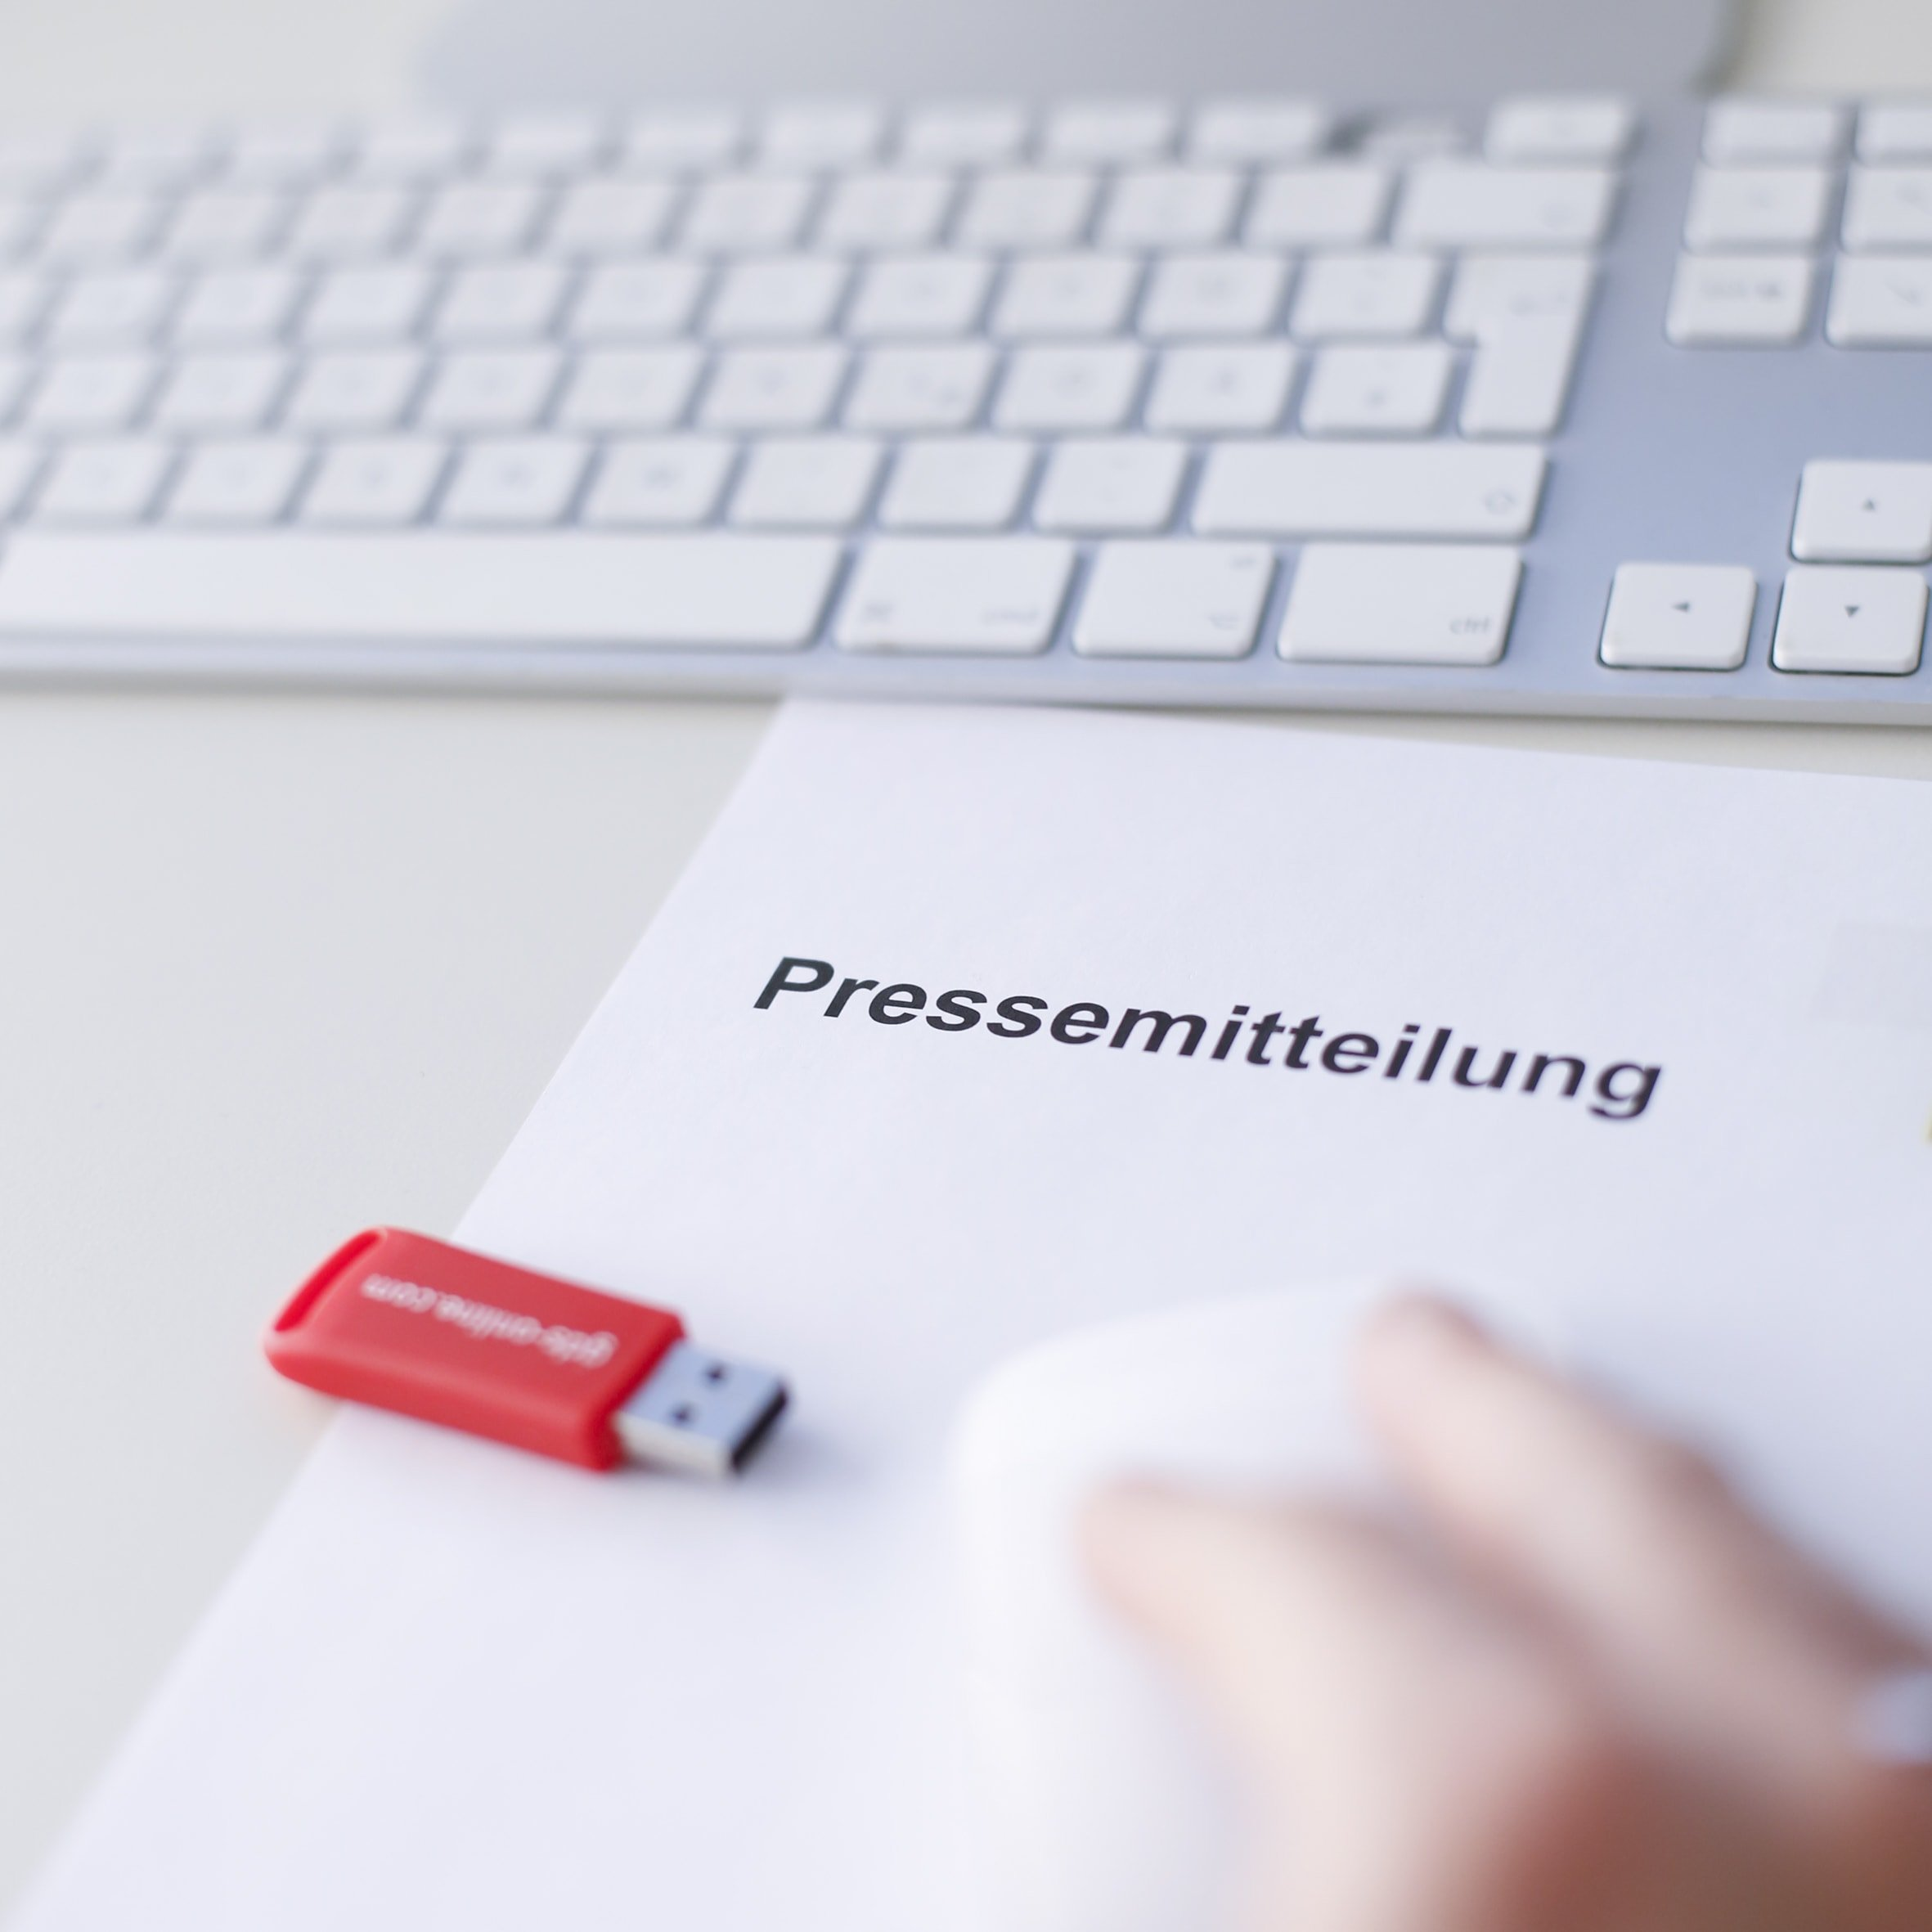 Upload-Pressemitteilung-medium.jpg